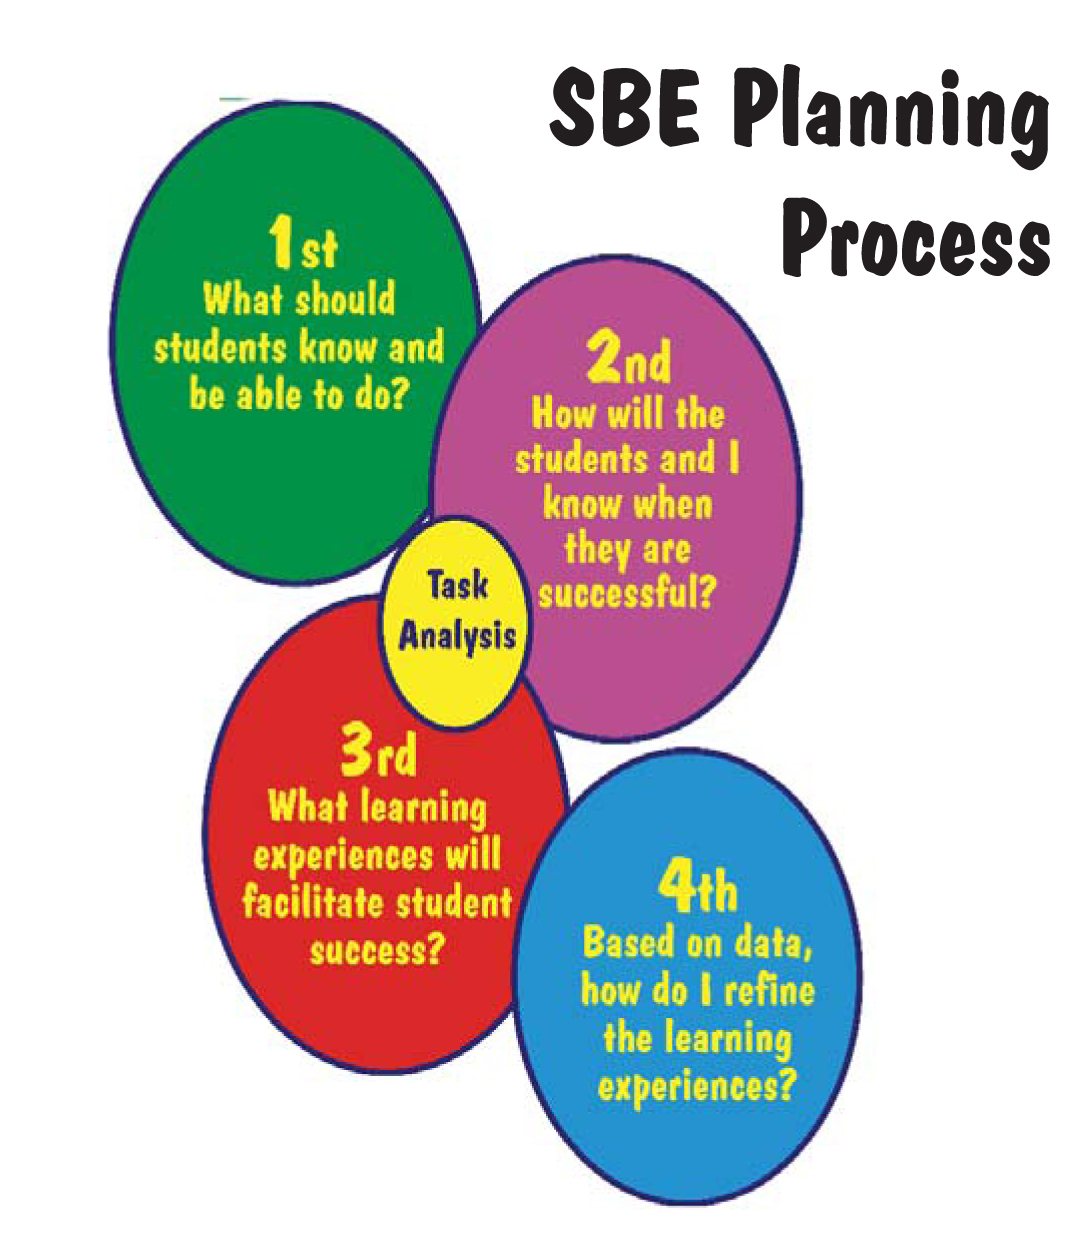 SBE Planning Process